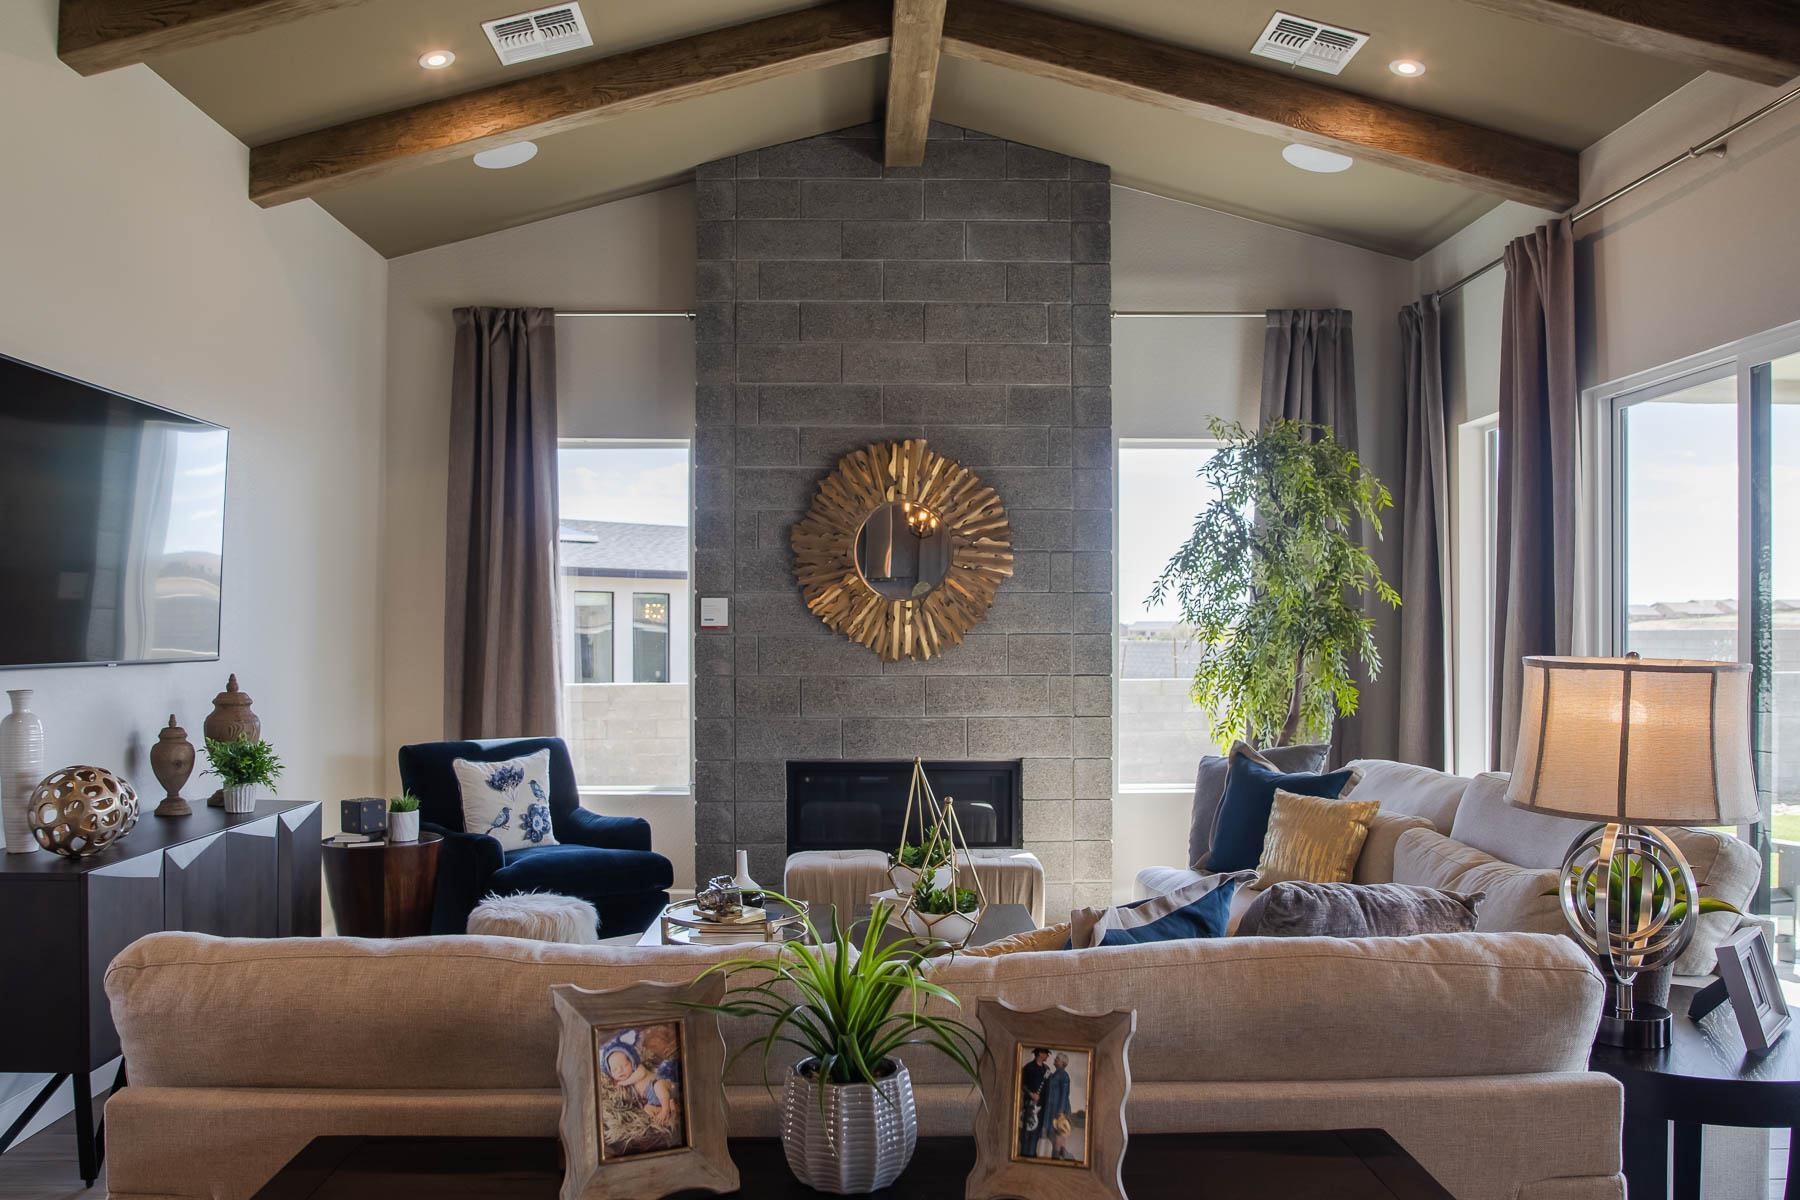 Living Area featured in the J706 By Mandalay Homes in Prescott, AZ